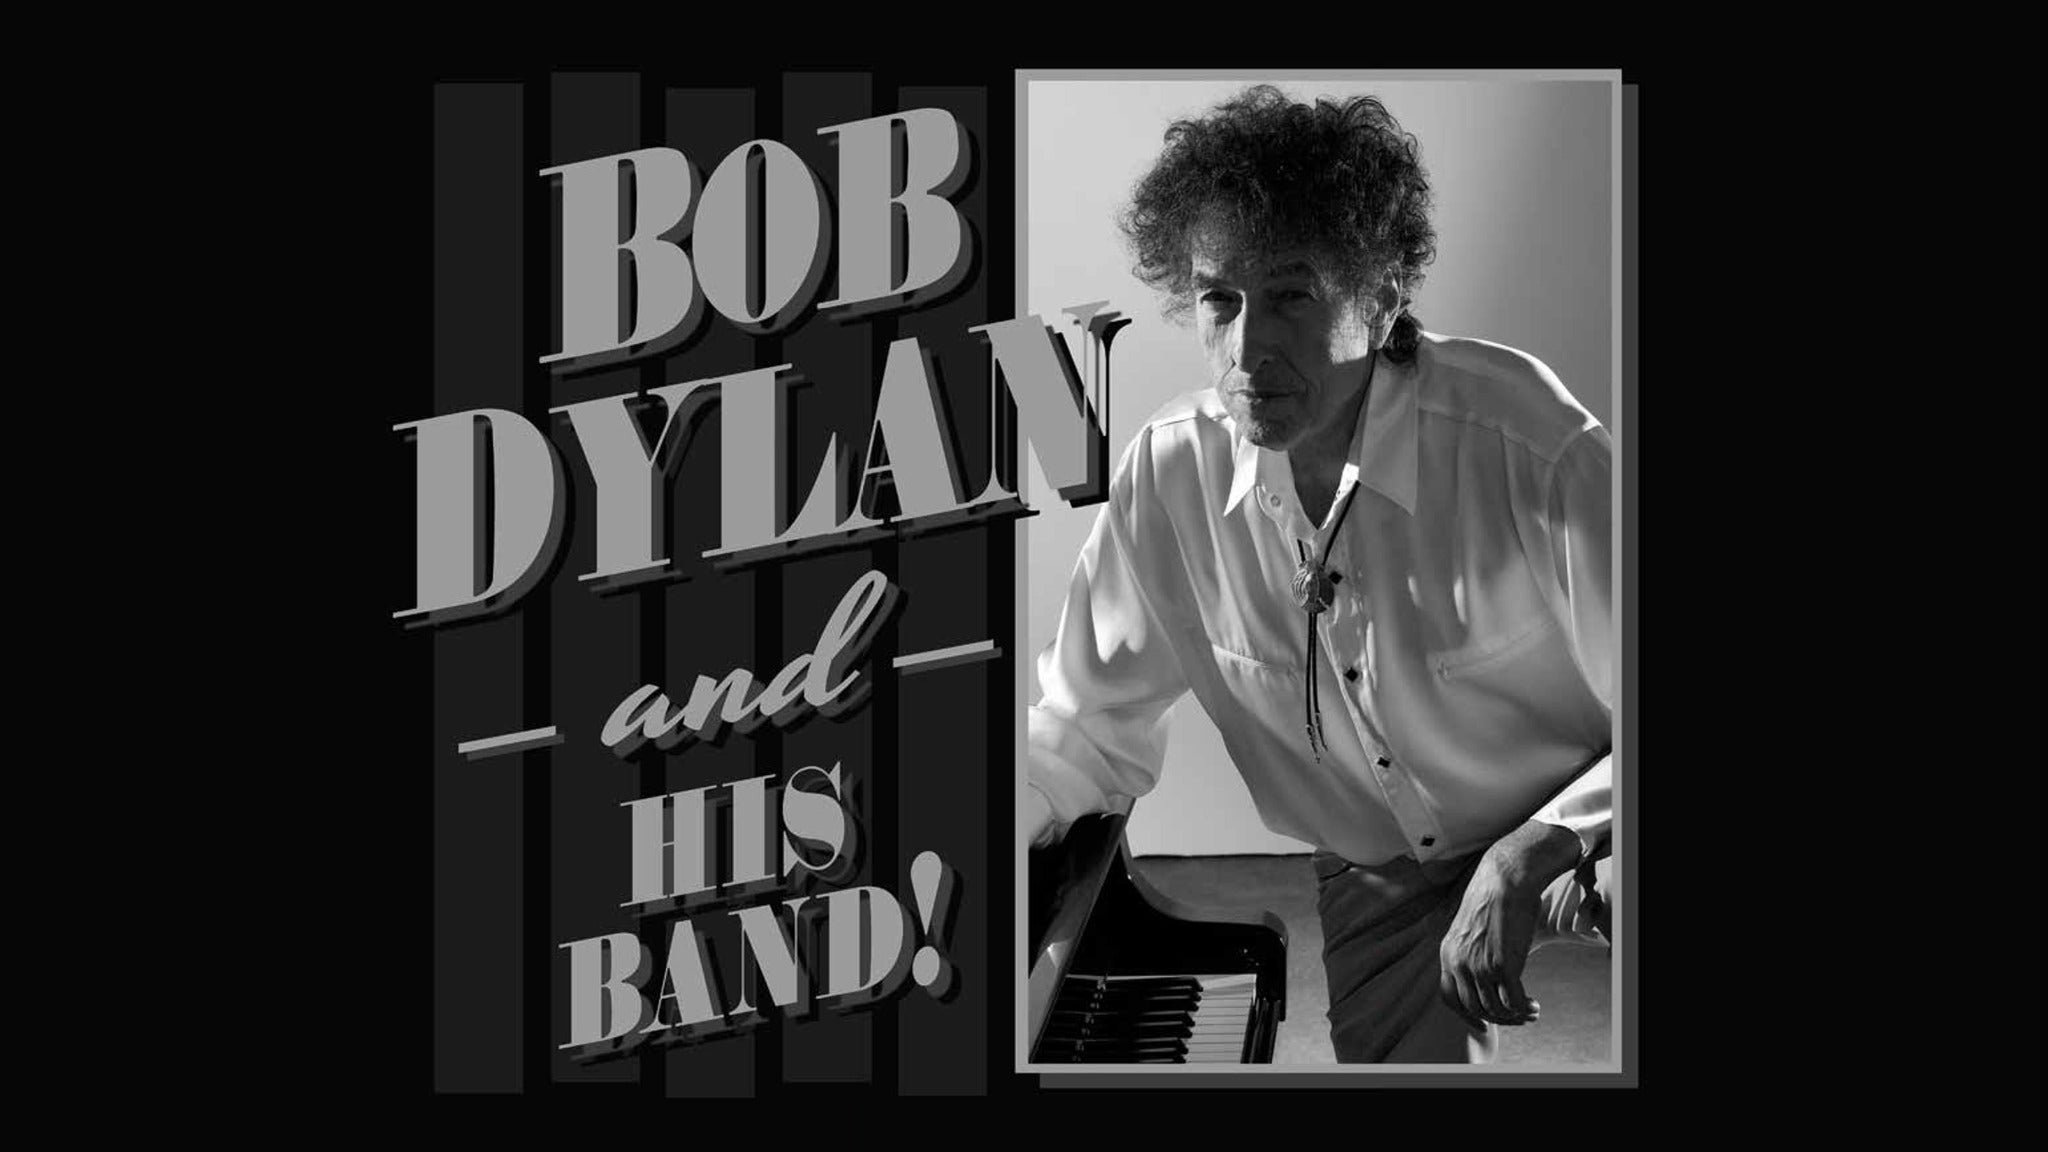 Bob Dylan at Von Braun Center Concert Hall